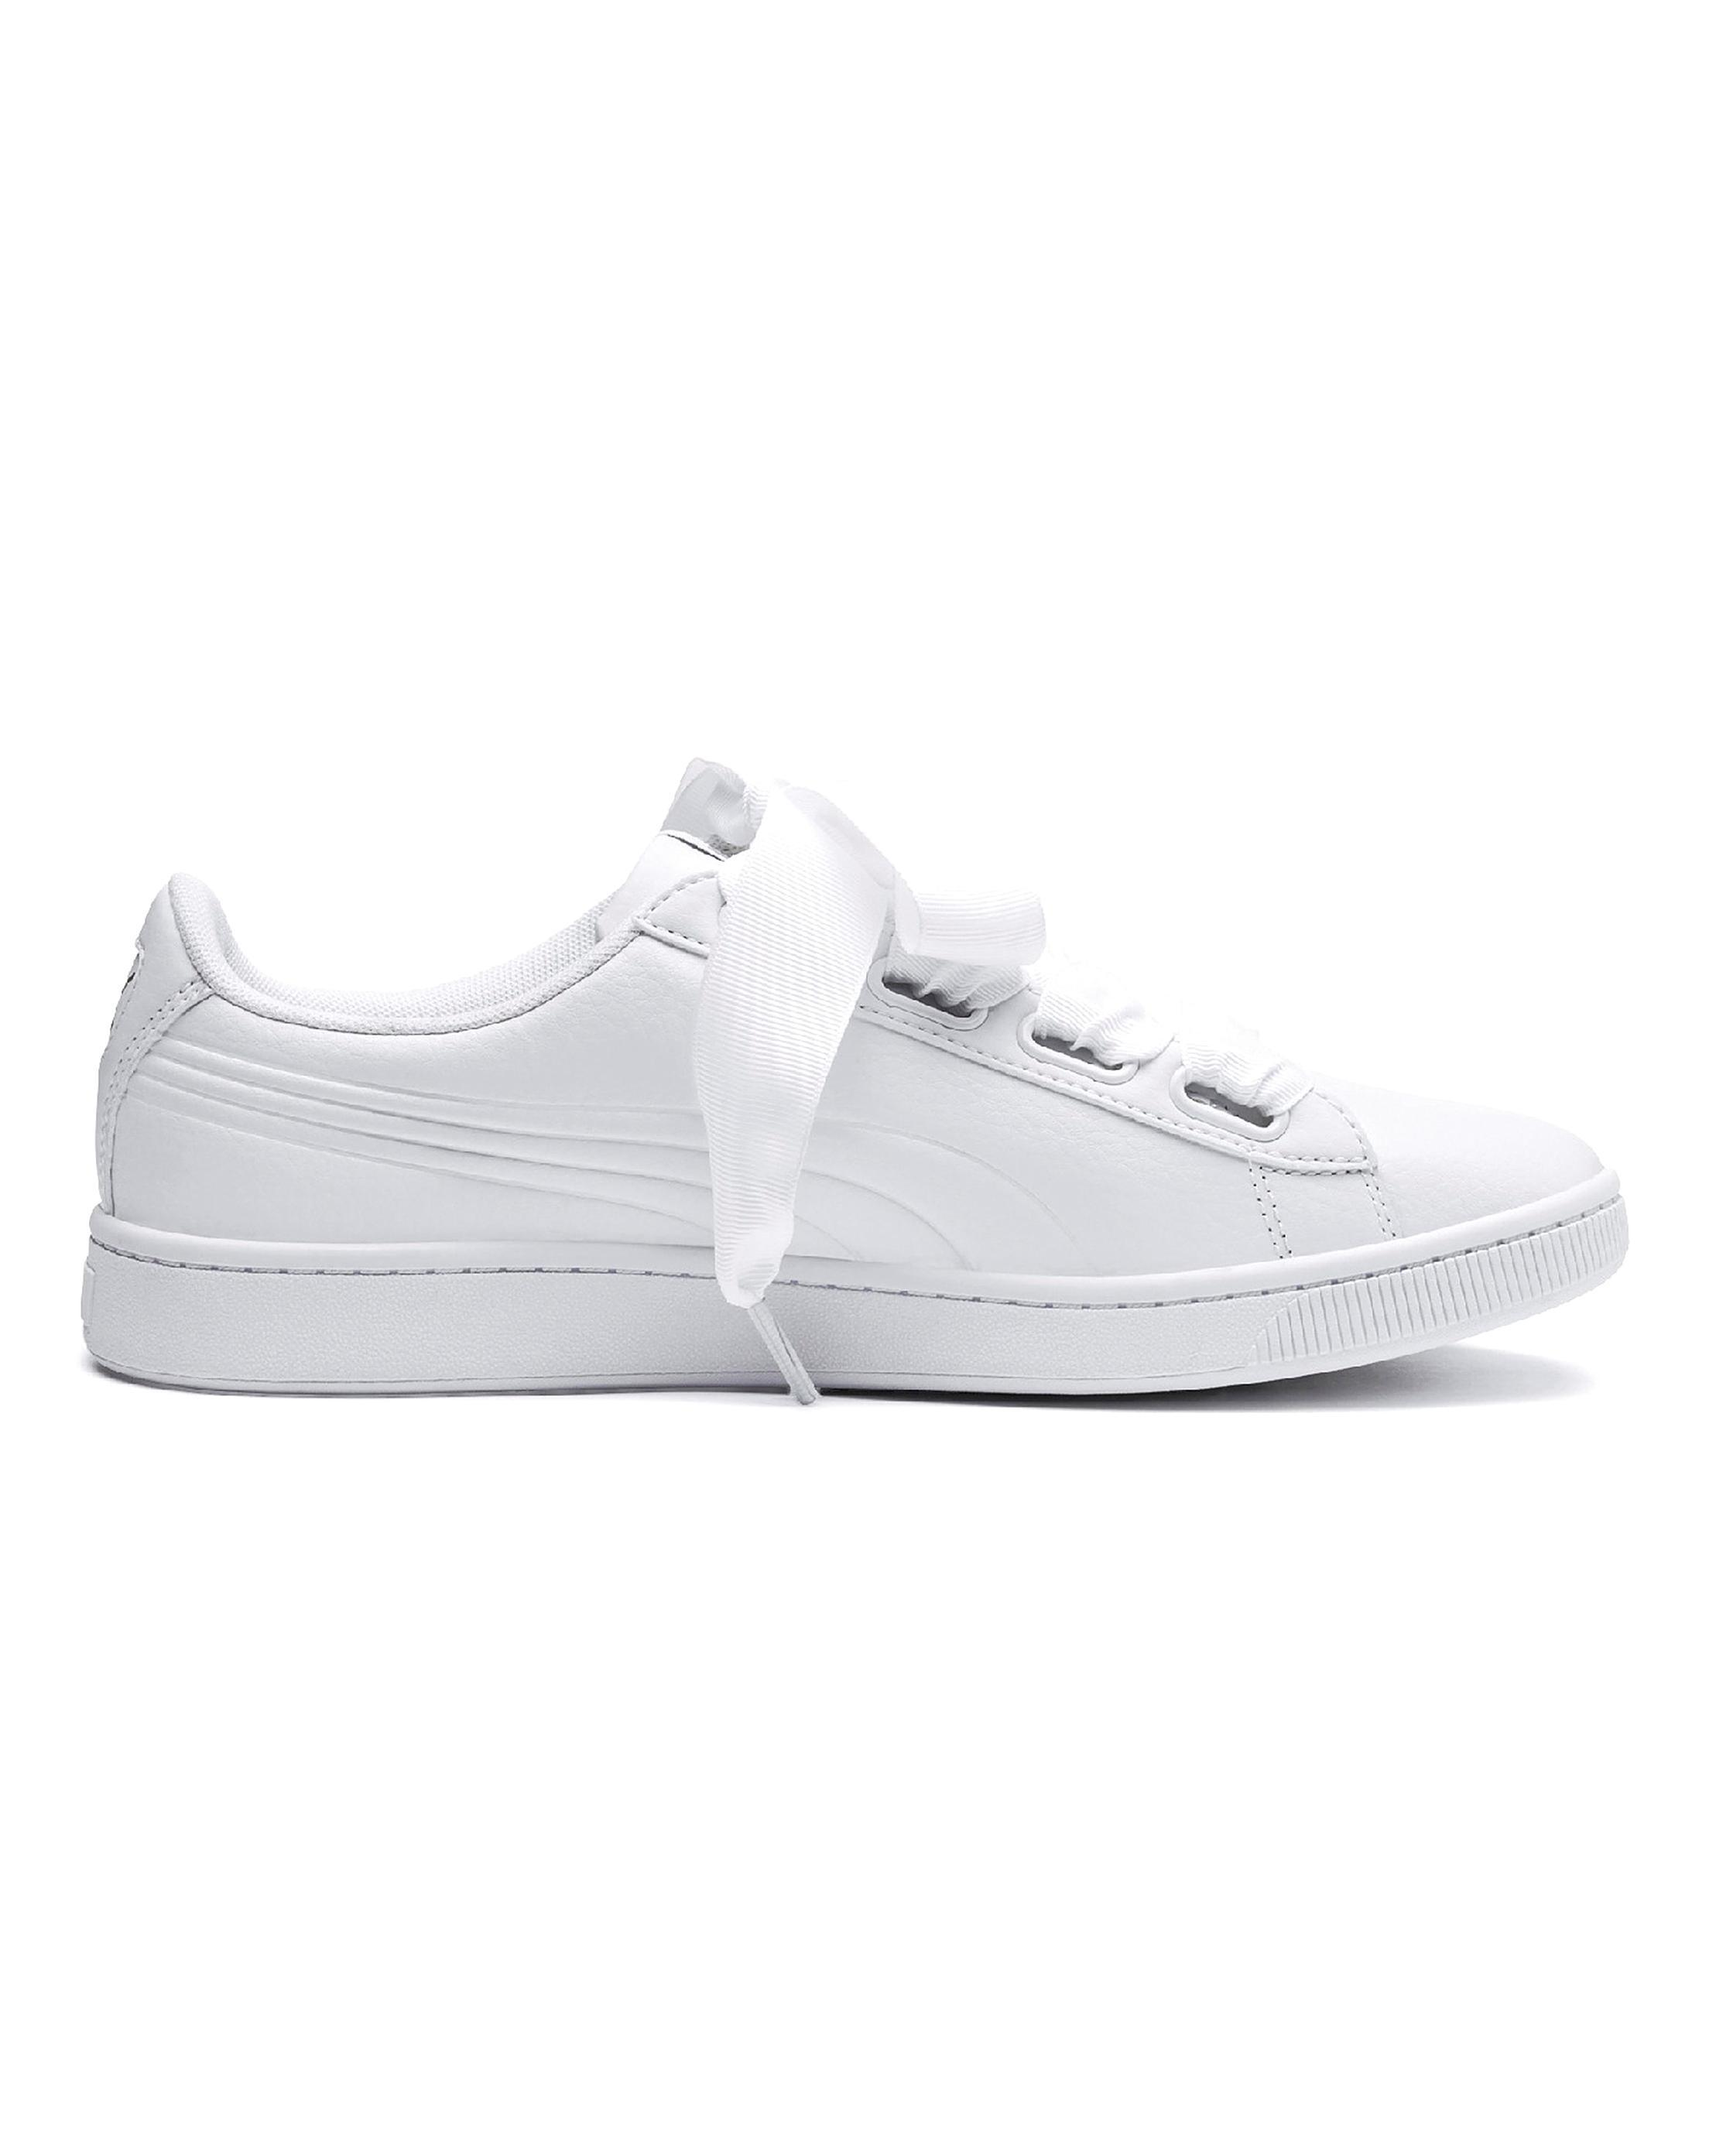 83fb6a972c Simply Be Puma Vikky V2 Ribbon Sneakers in White - Lyst